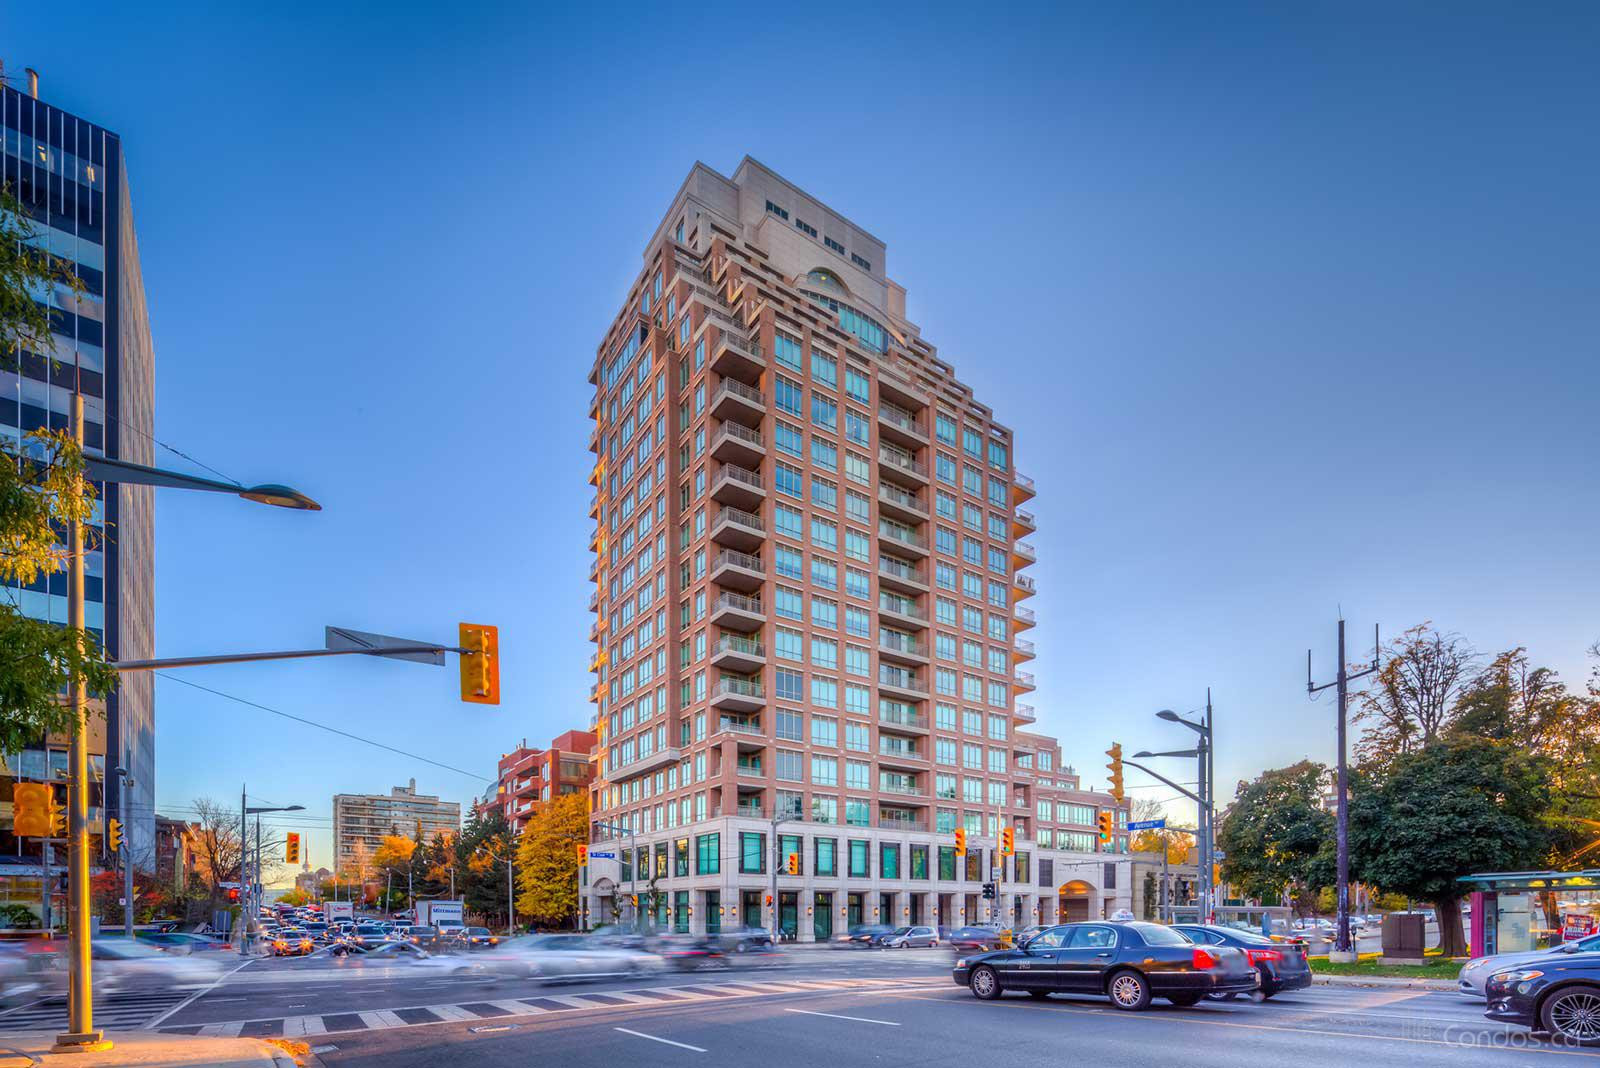 The Avenue at 155 St Clair Ave W, Toronto 0